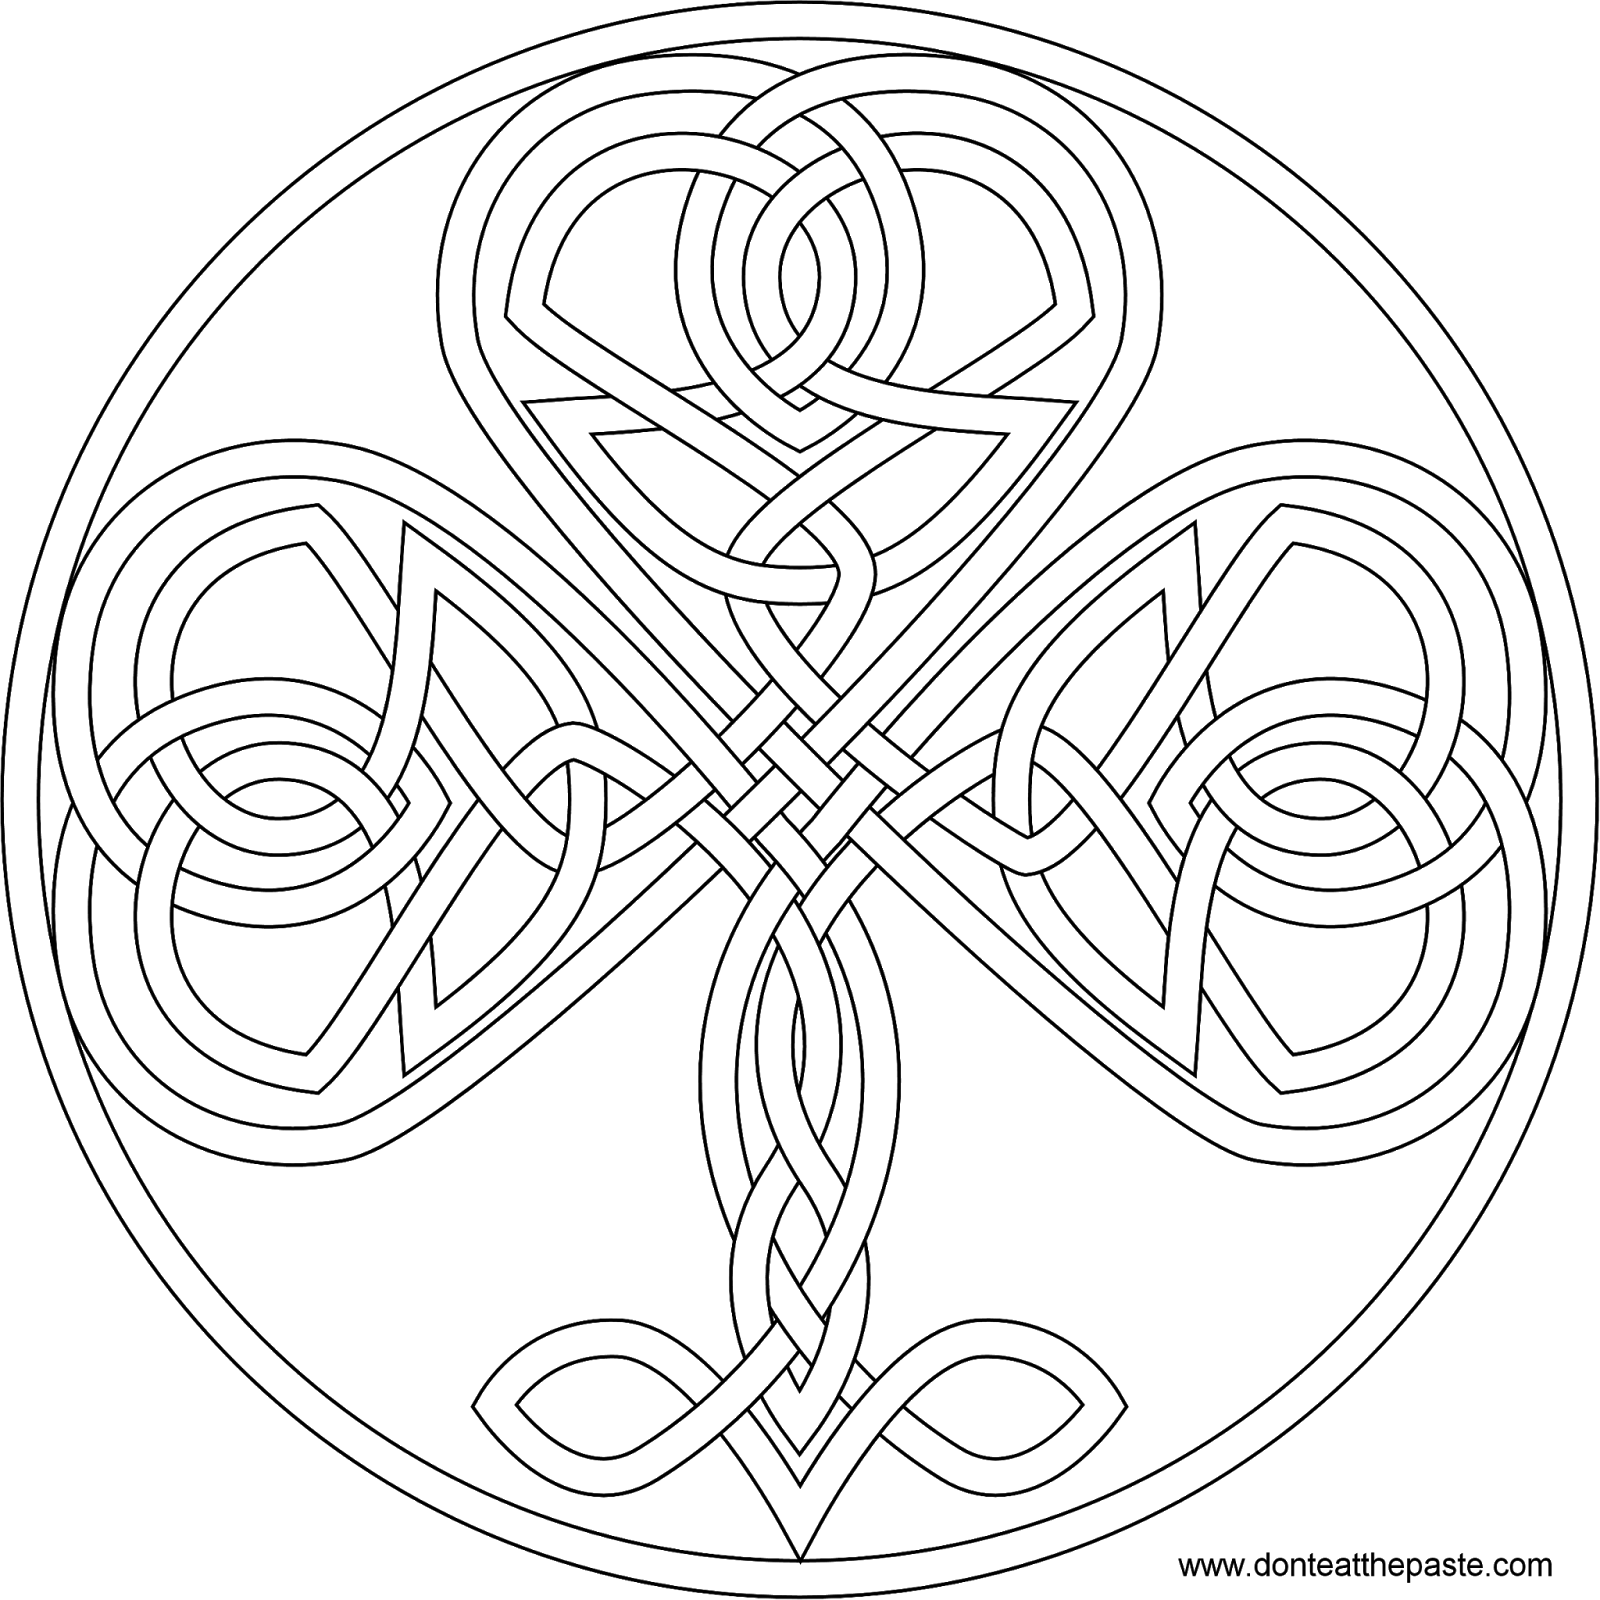 Knotwork Shamrock To Color Also Available In Format